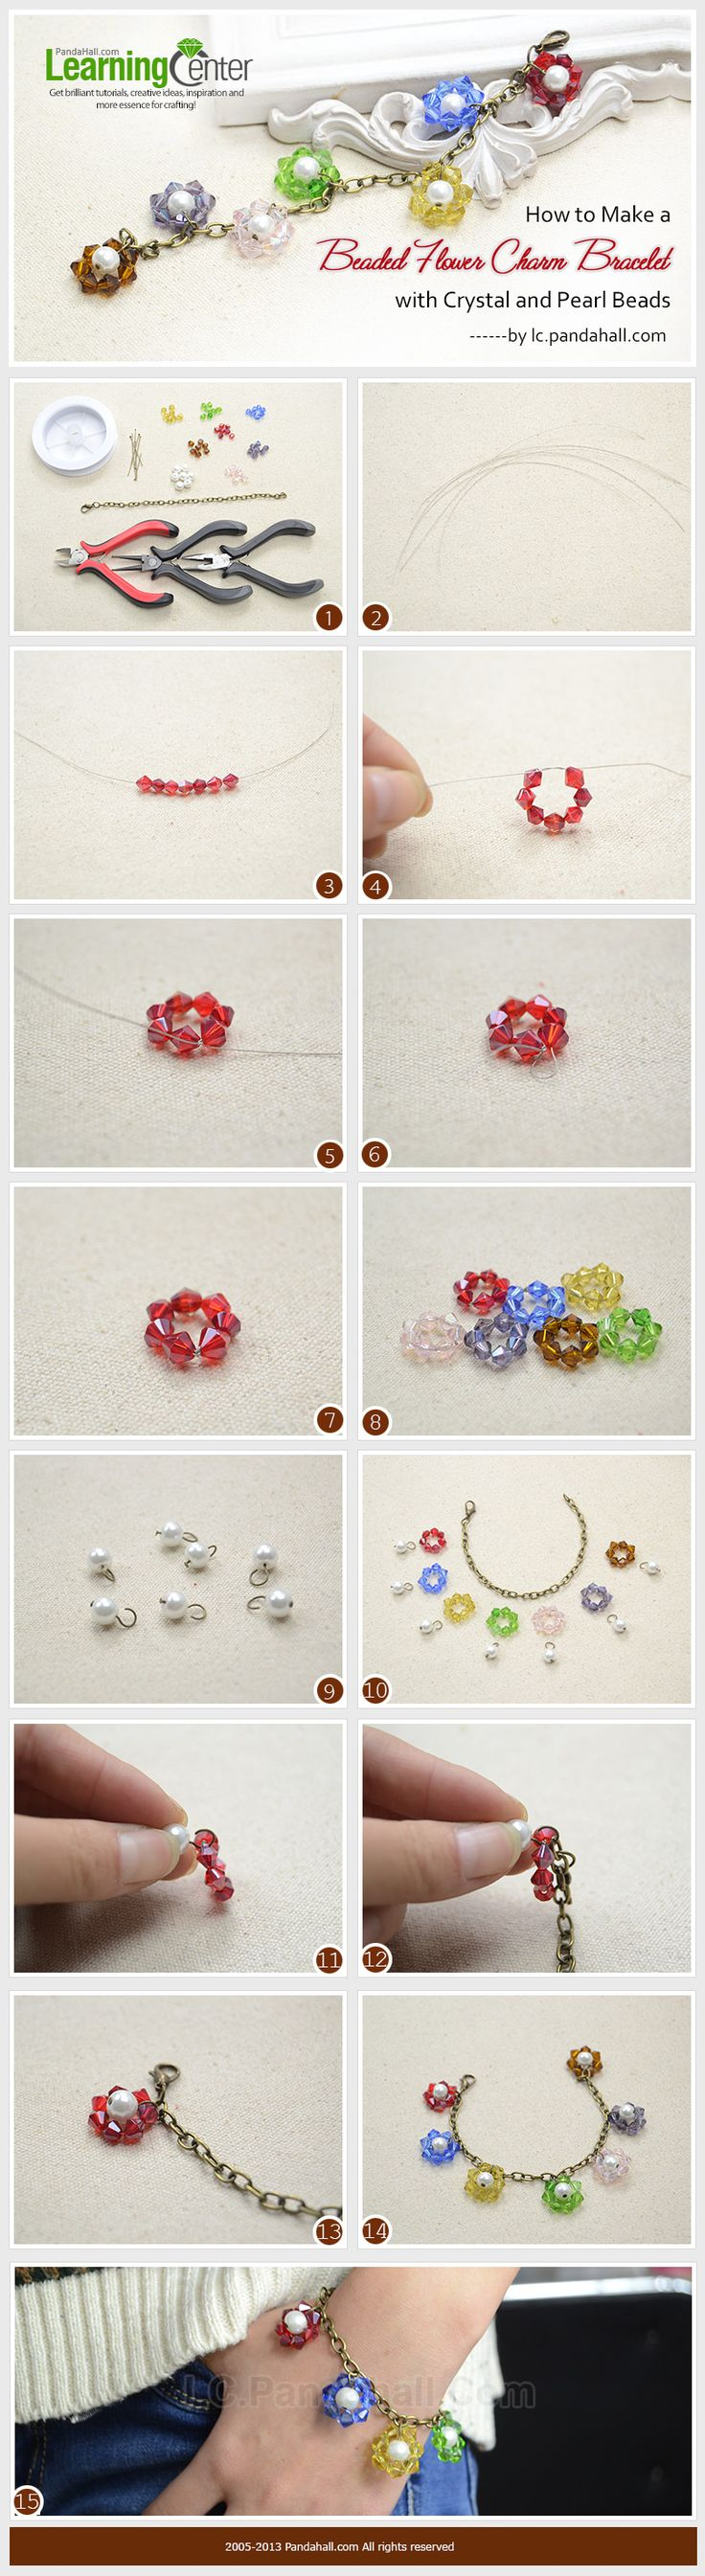 How to Make a Beaded Flower Charm Bracelet with Crystal and Pearl Beads